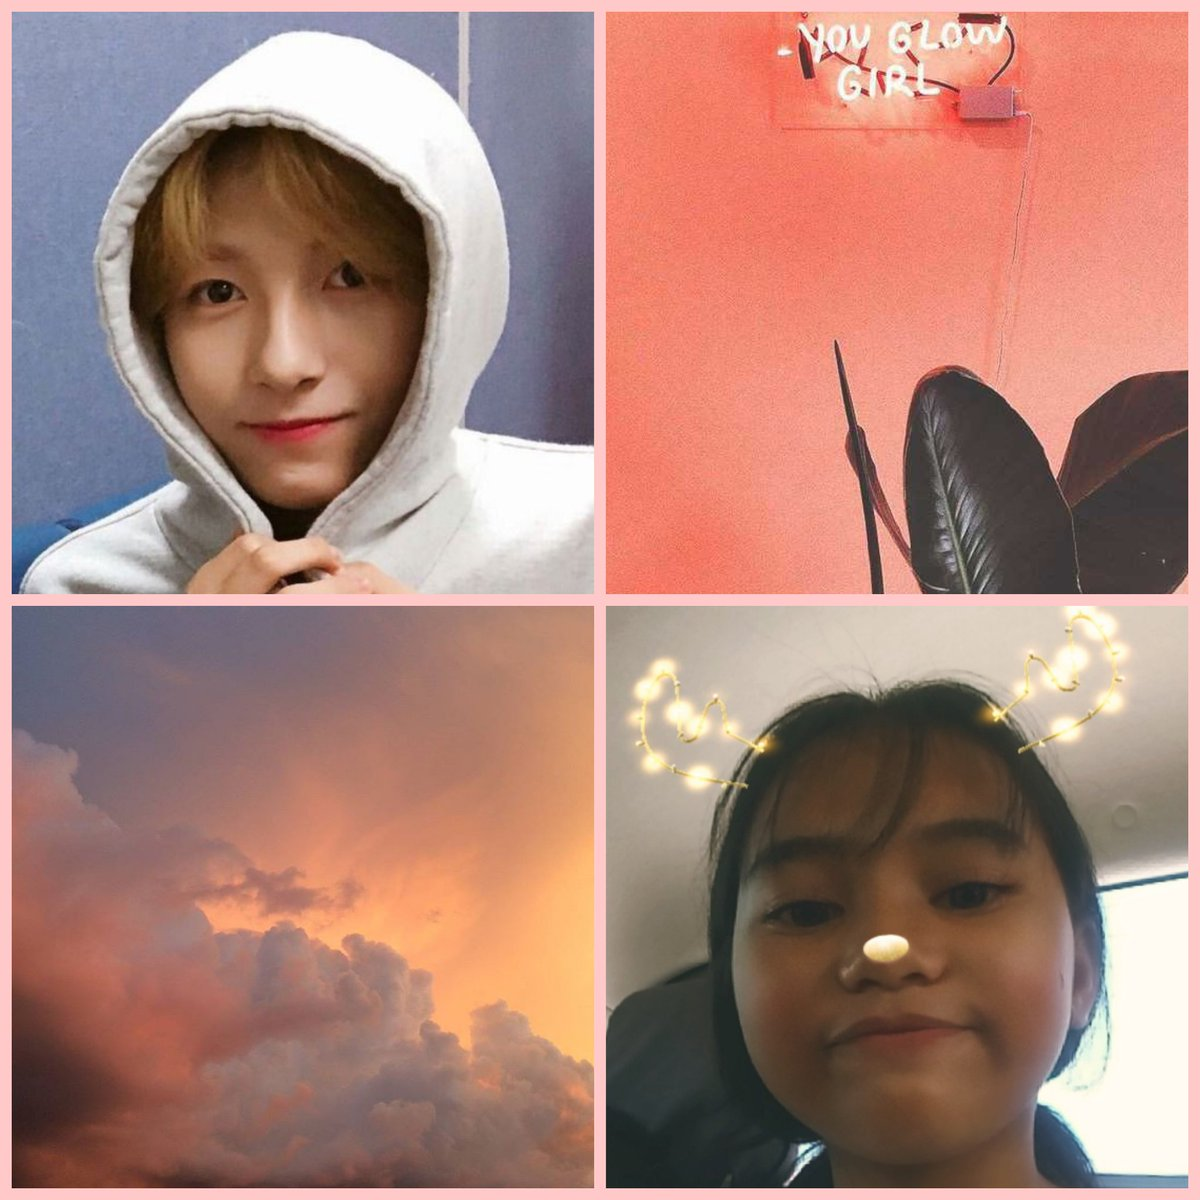 ↳❝𝚊𝚝𝚝𝚛𝚊𝚌𝚝𝚎𝚍 𝚝𝚘 𝚢𝚘𝚞 𝚒𝚗 𝚠𝚊𝚢𝚜 𝚒 𝚌𝚊𝚗𝚗𝚘𝚝 𝚎𝚡𝚙𝚕𝚊𝚒𝚗❞ #NCTzenSelcaDay @NCTsmtown_127 @NCTsmtown @NCTsmtown_DREAM @WayV_official